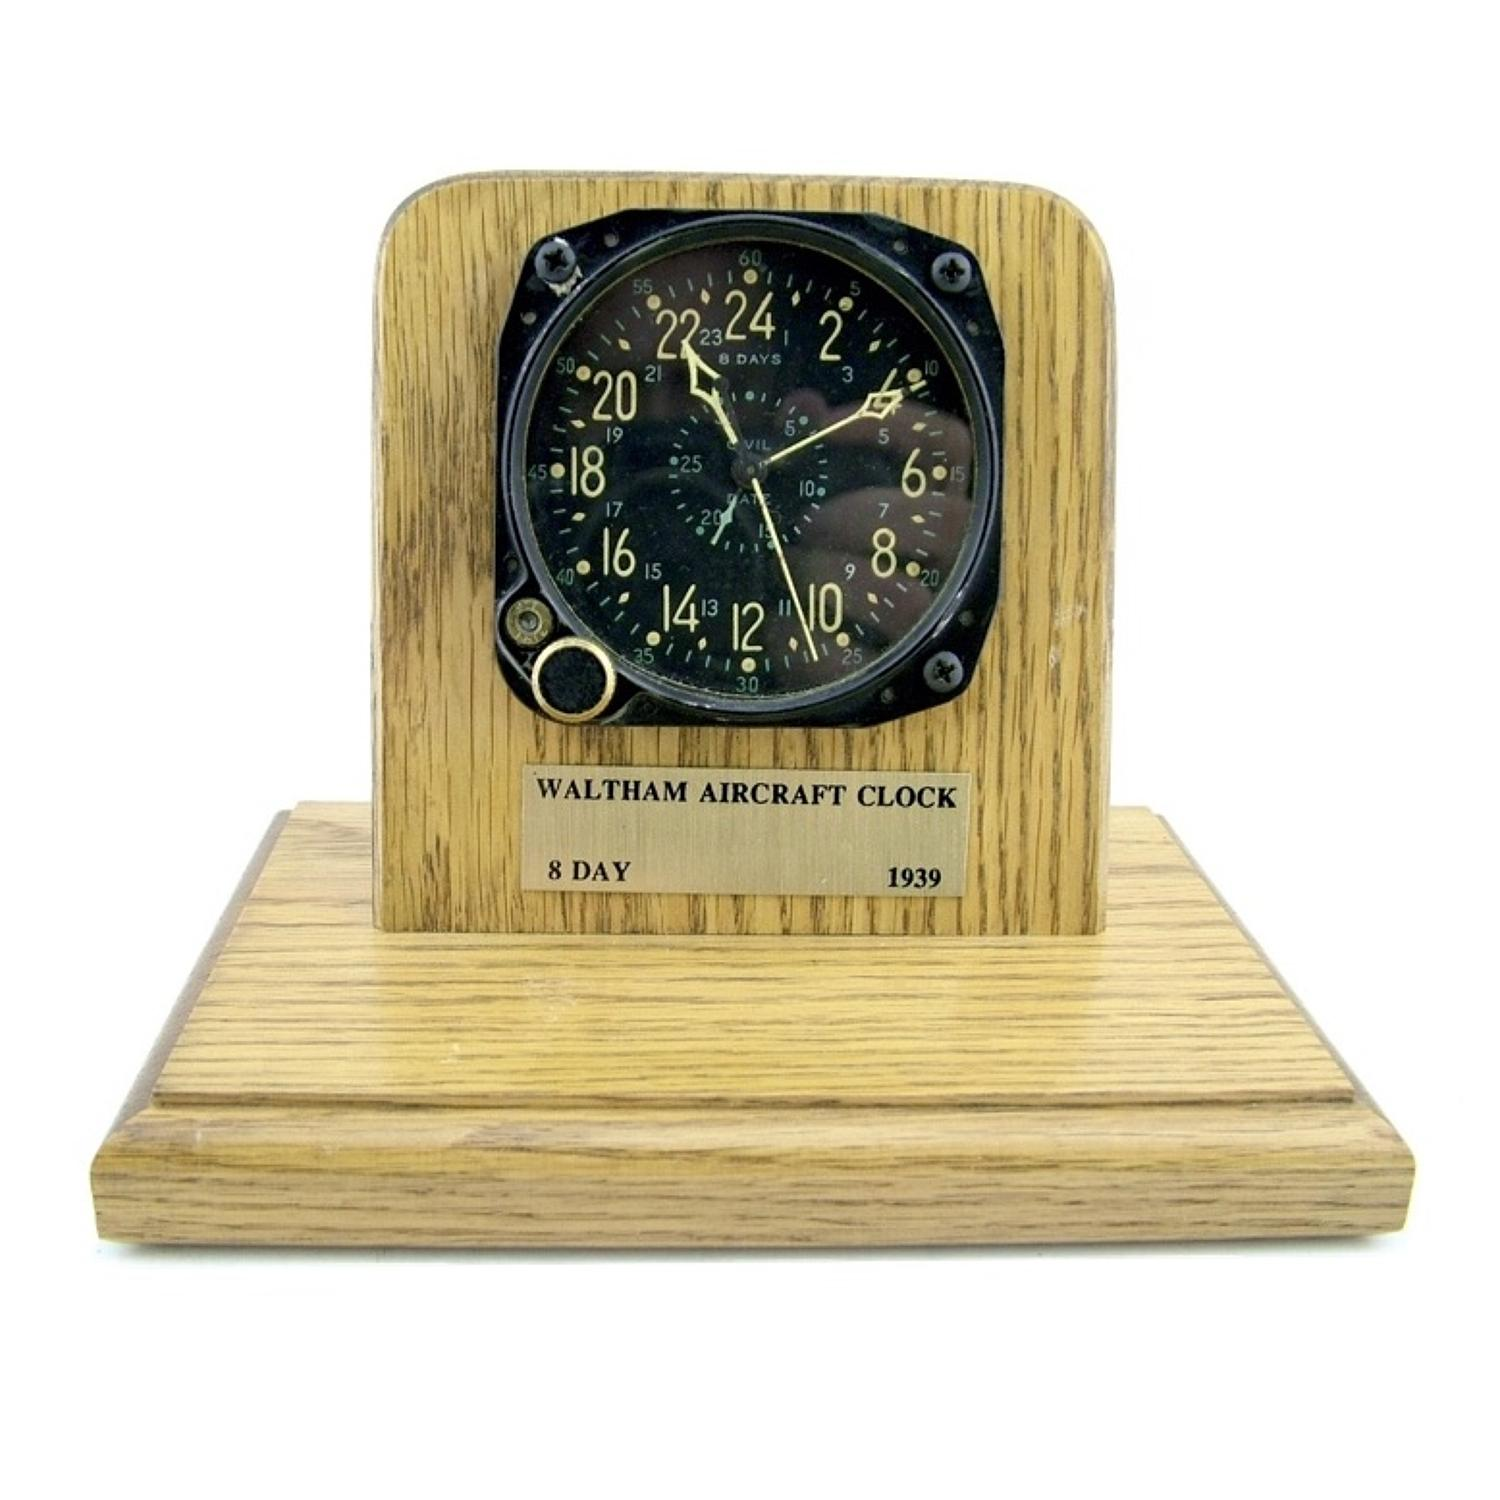 US Navy aircraft clock